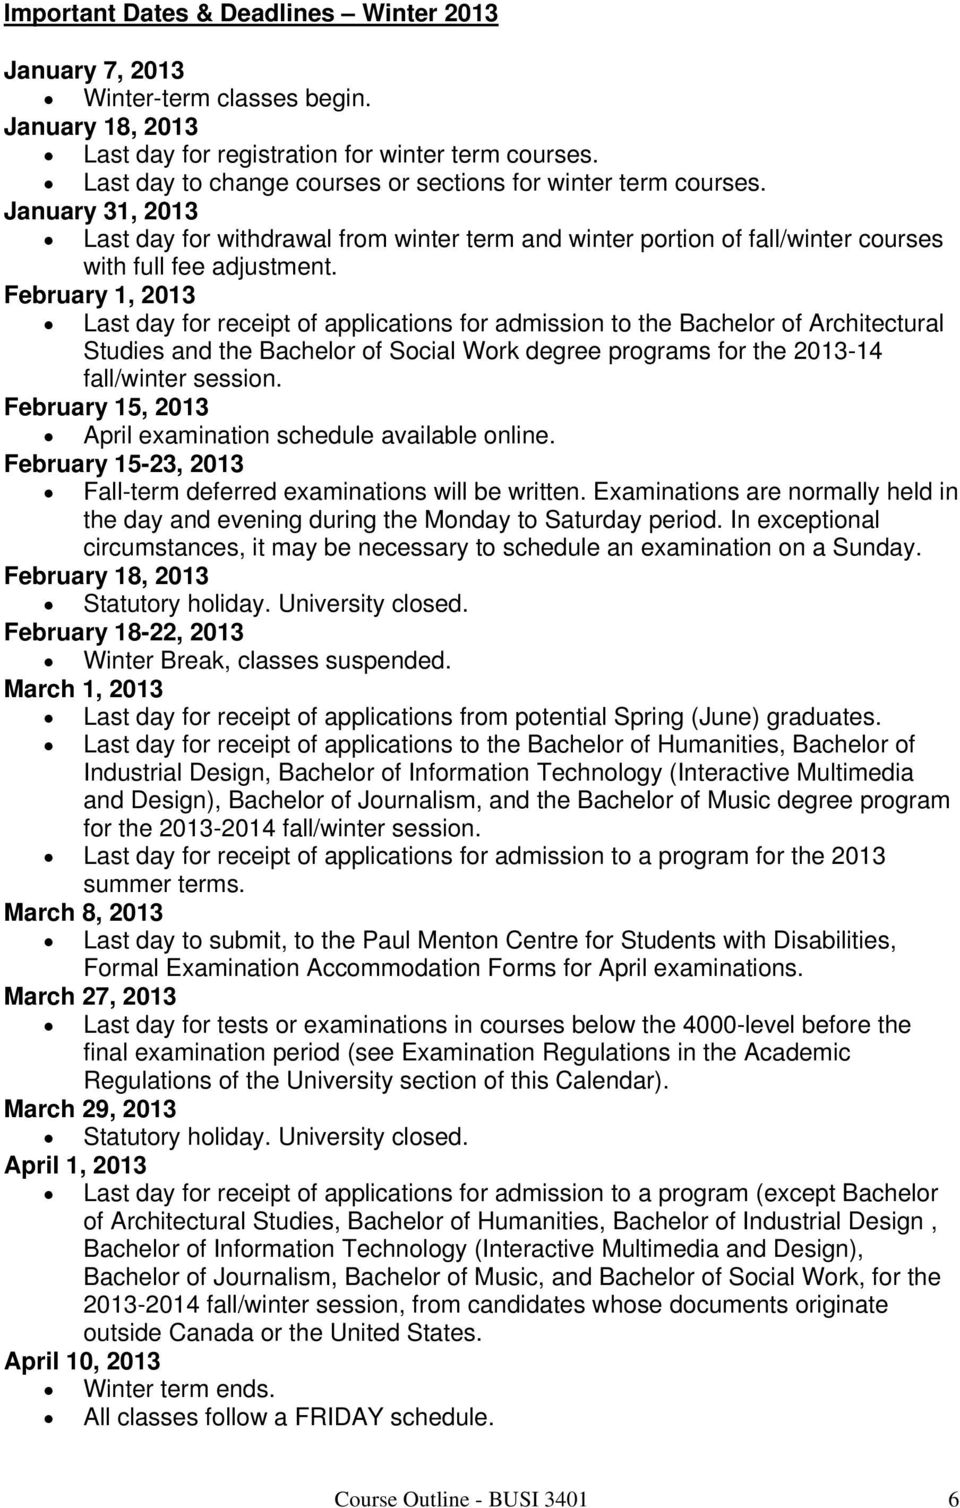 February 1, 2013 Last day for receipt of applications for admission to the Bachelor of Architectural Studies and the Bachelor of Social Work degree programs for the 2013-14 fall/winter session.